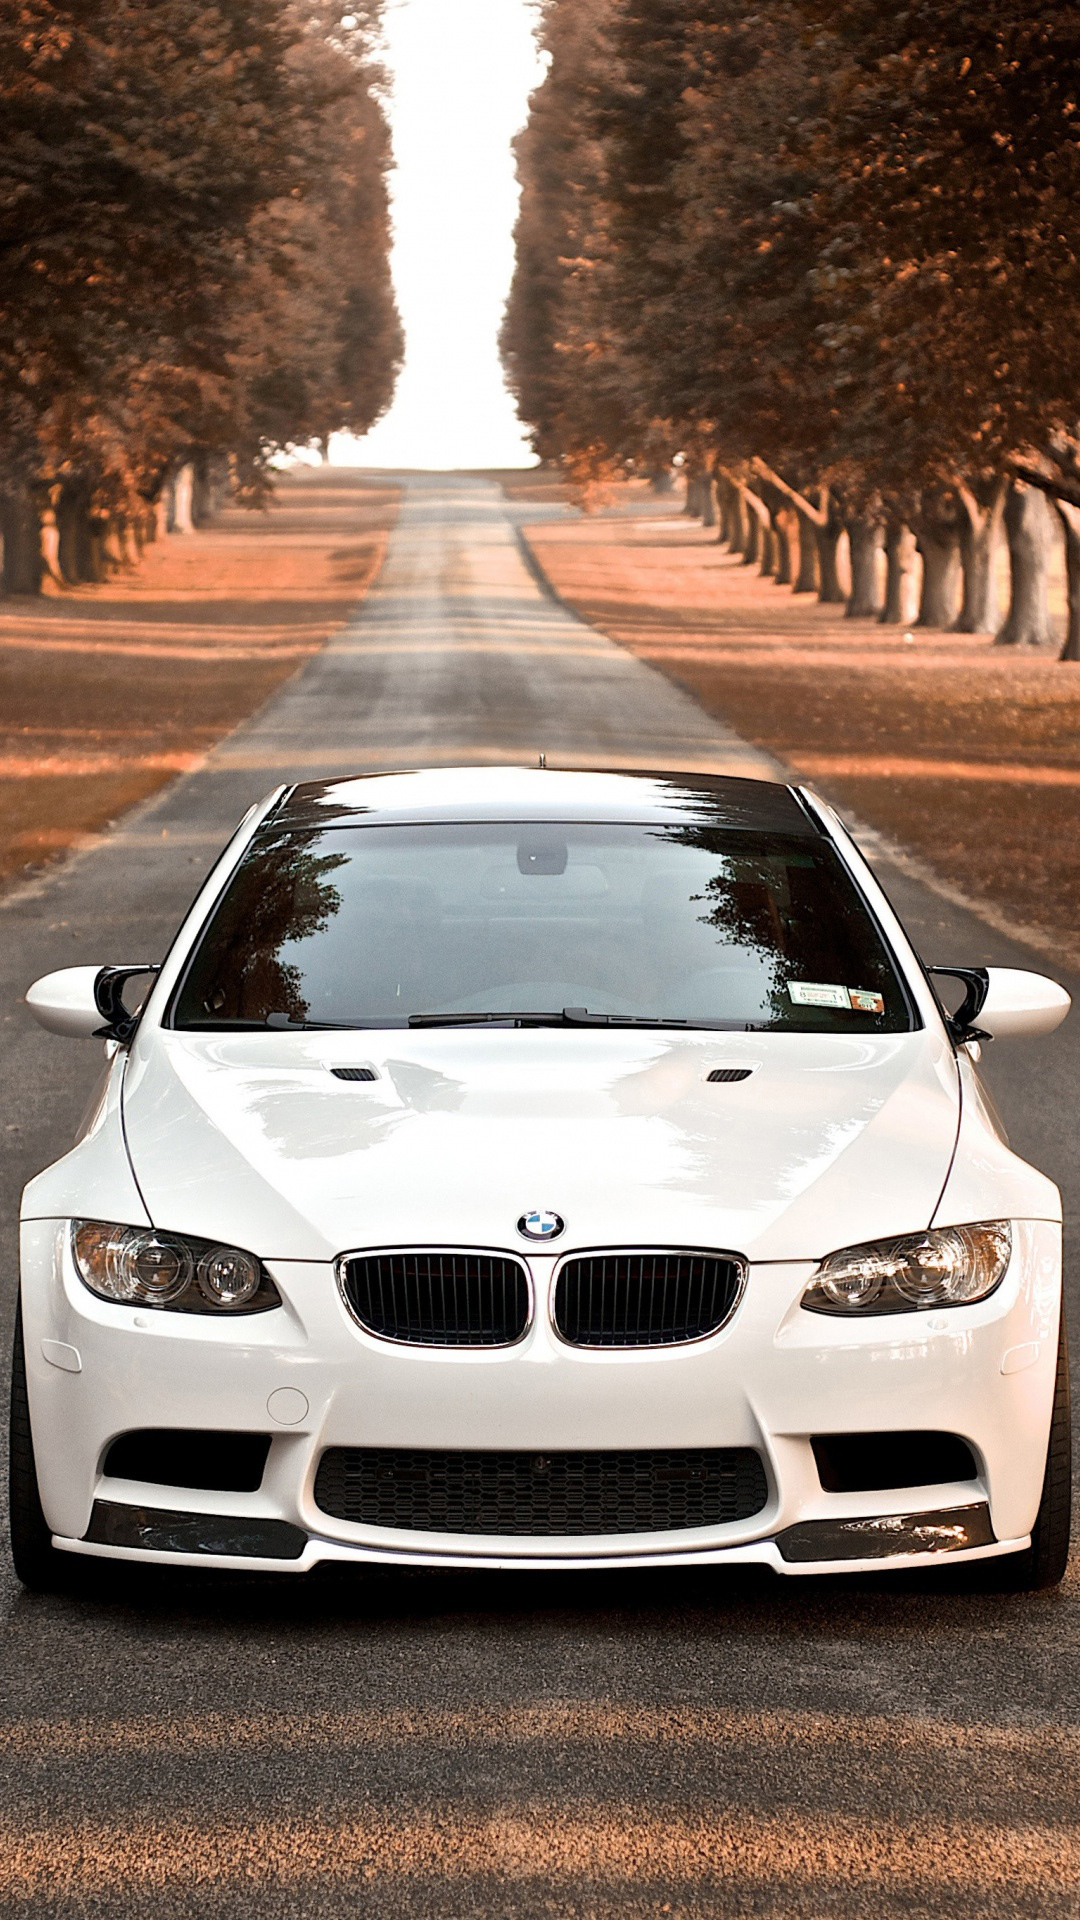 BMW M3 Branca Android Wallpaper download 1080x1920